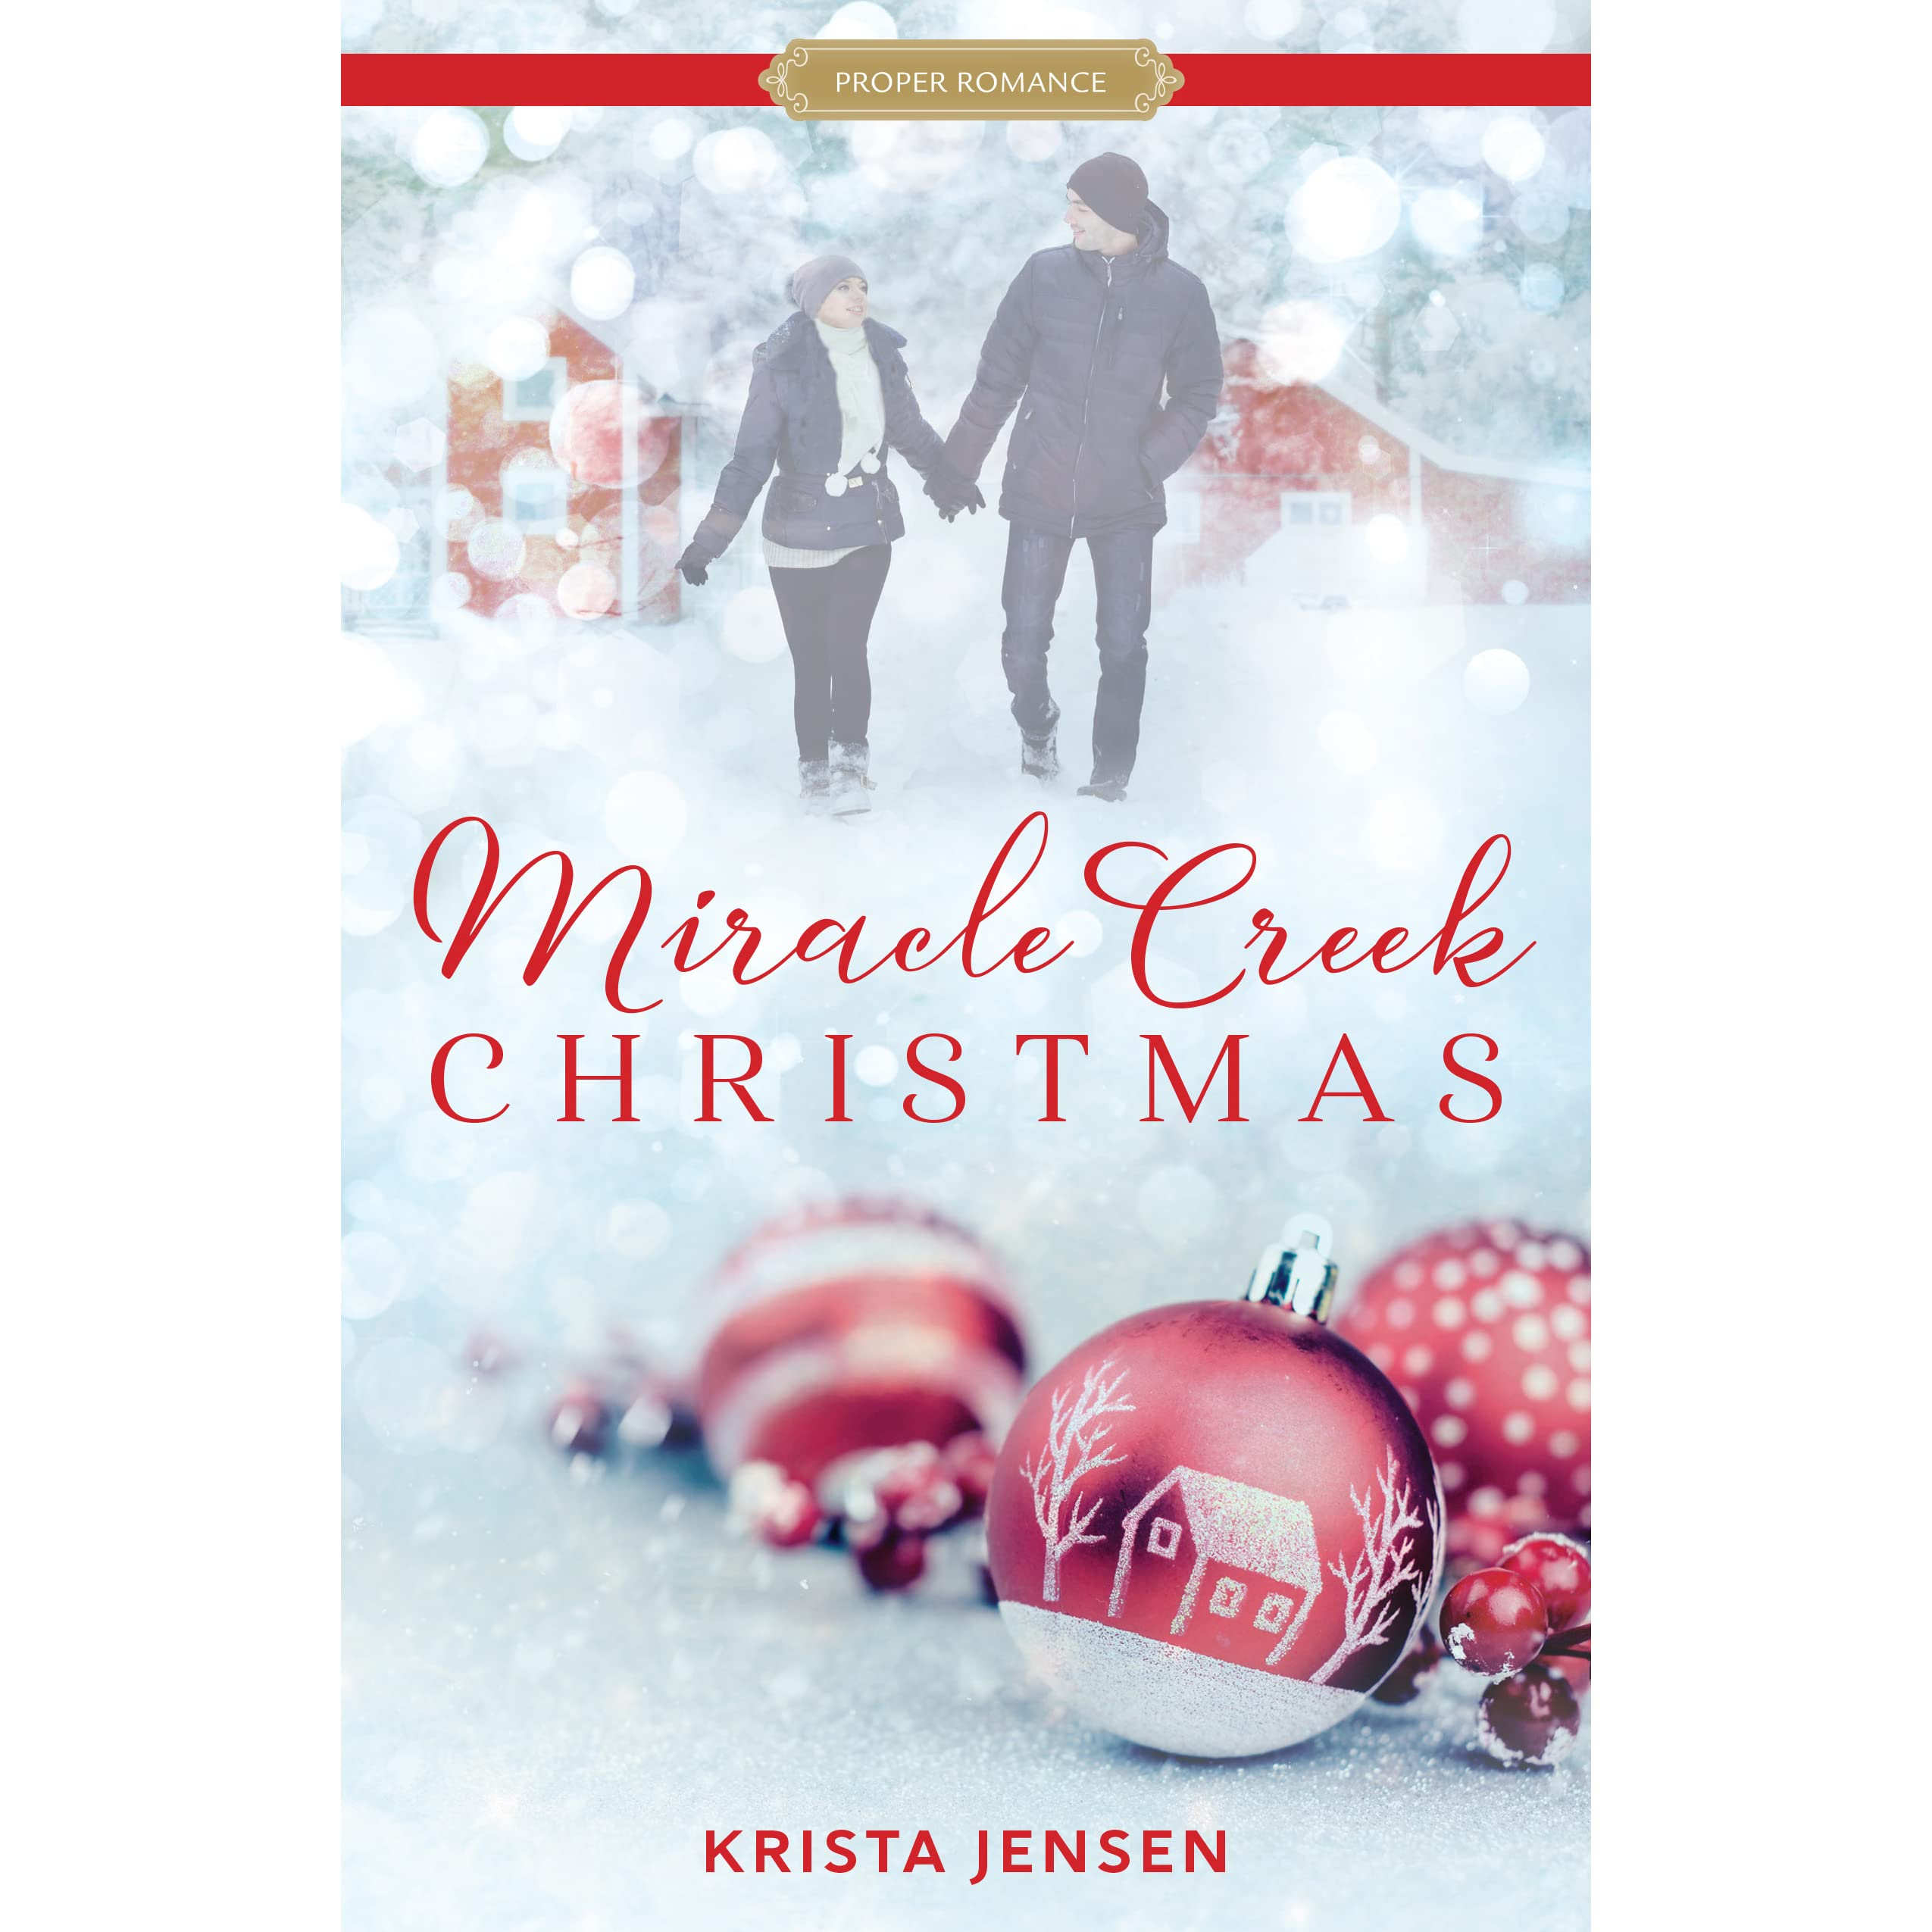 Miracle Creek Christmas by Krista Jensen